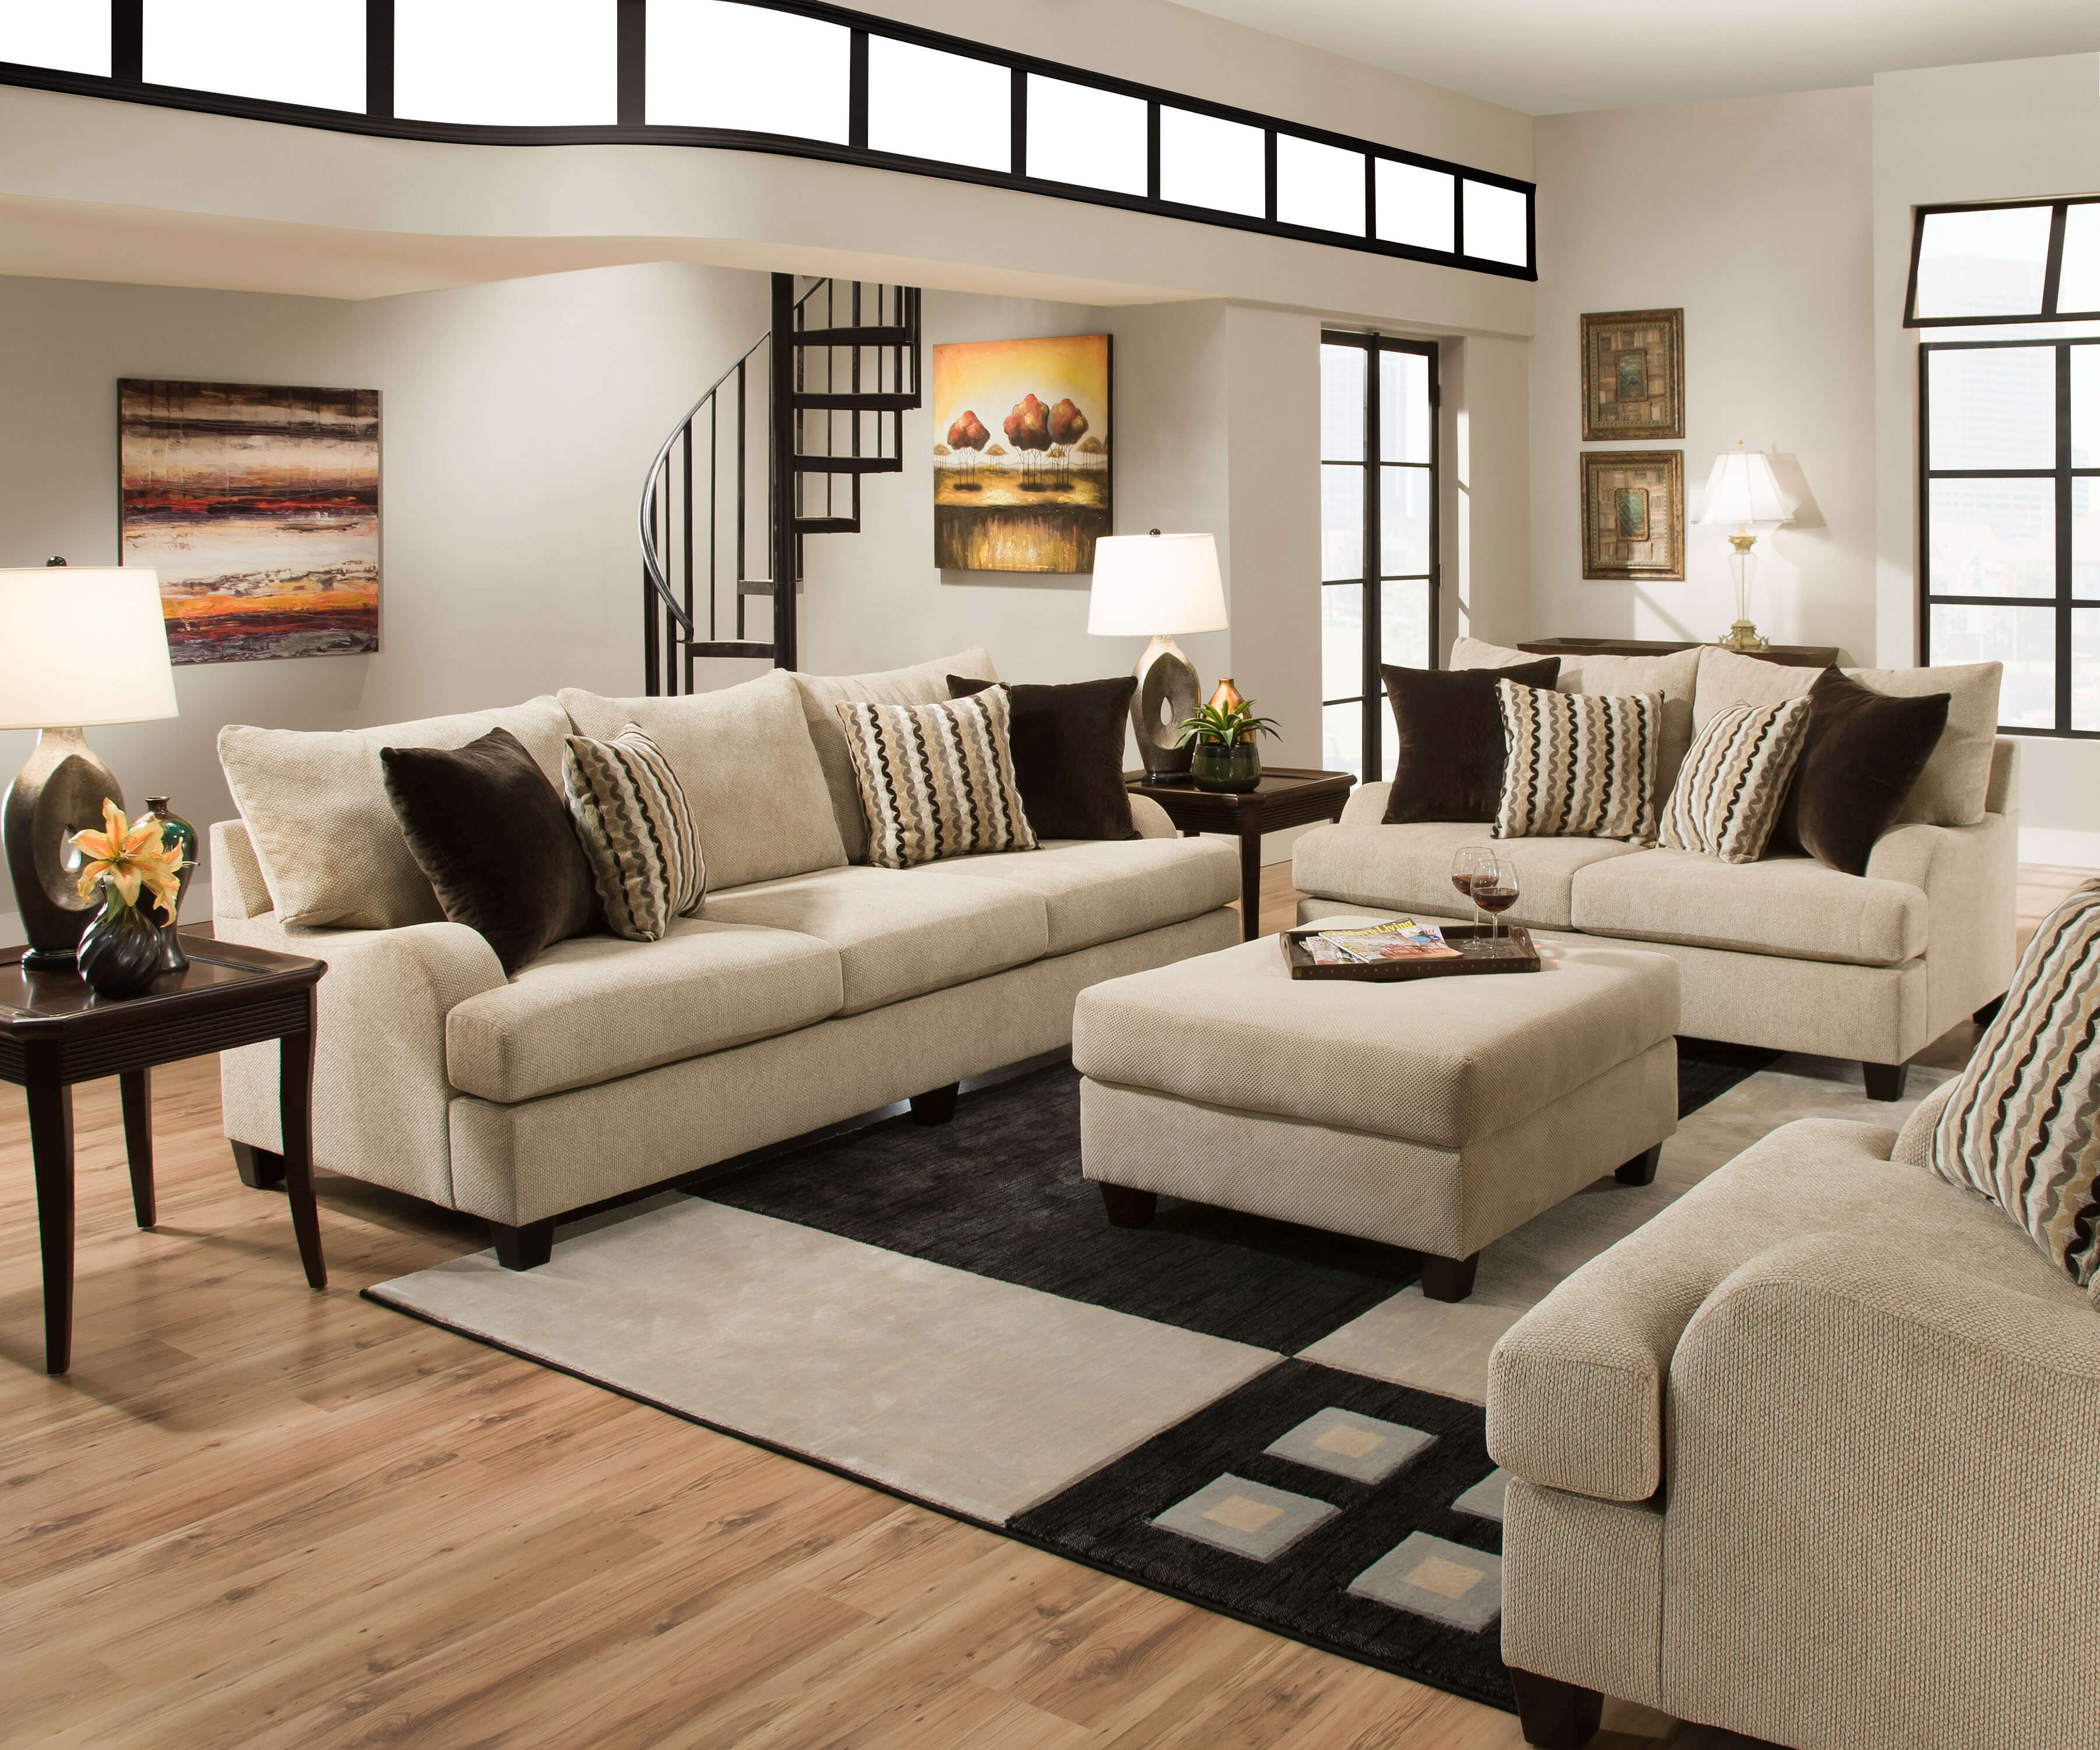 Simmons Trinidad Taupe Living Room Set Fabric Living Room Sets Pertaining To Living Room Sets